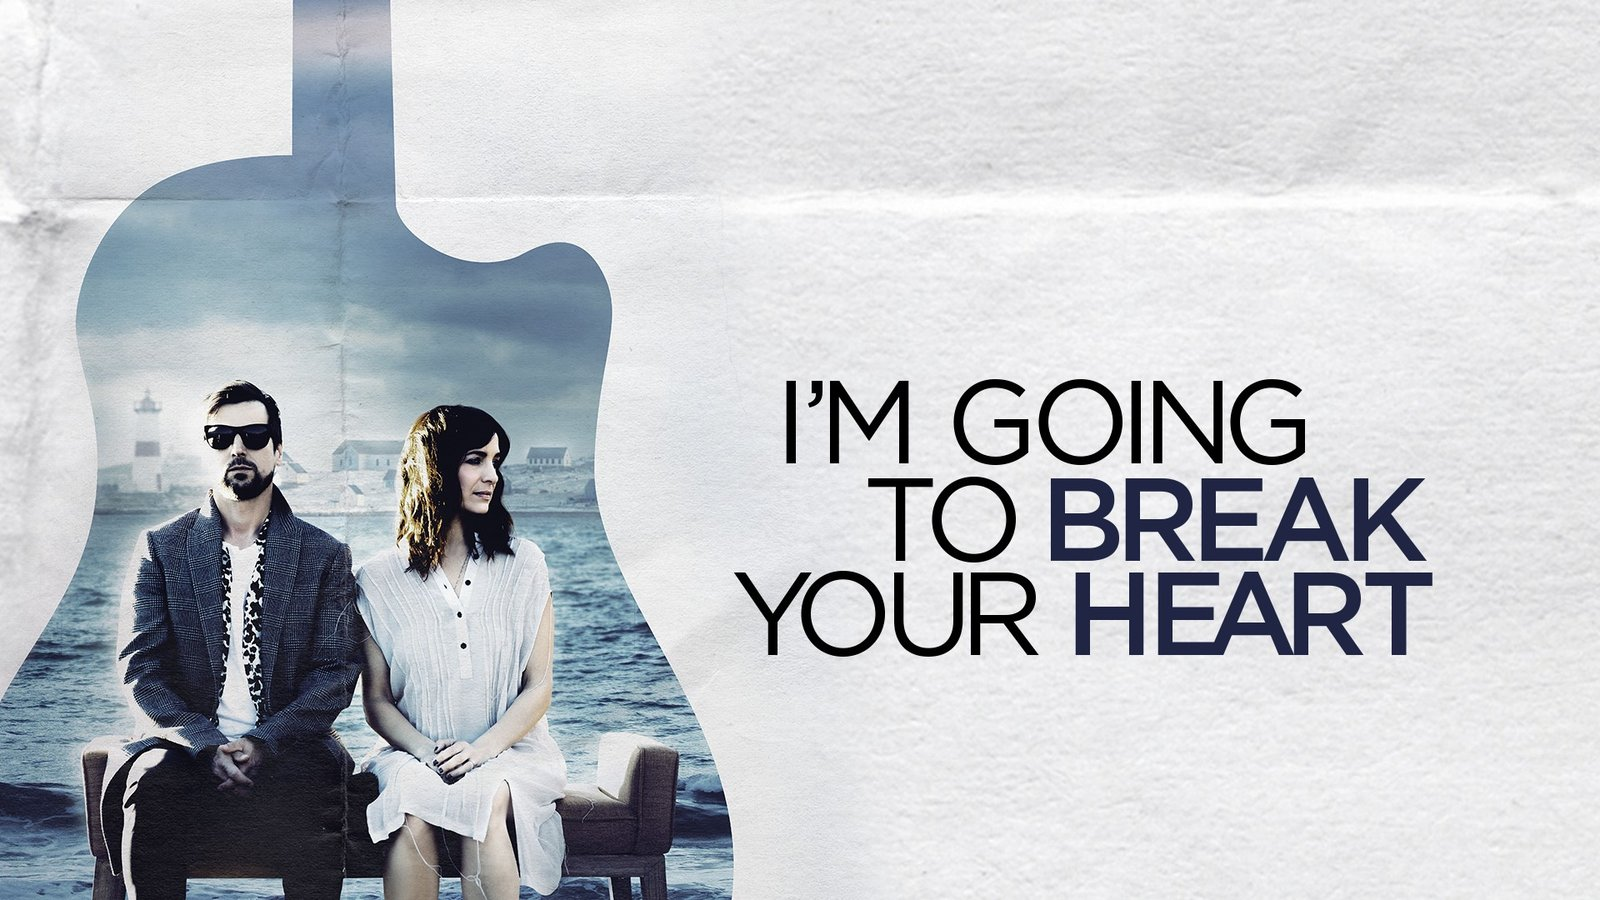 I'm Going To Break Your Heart